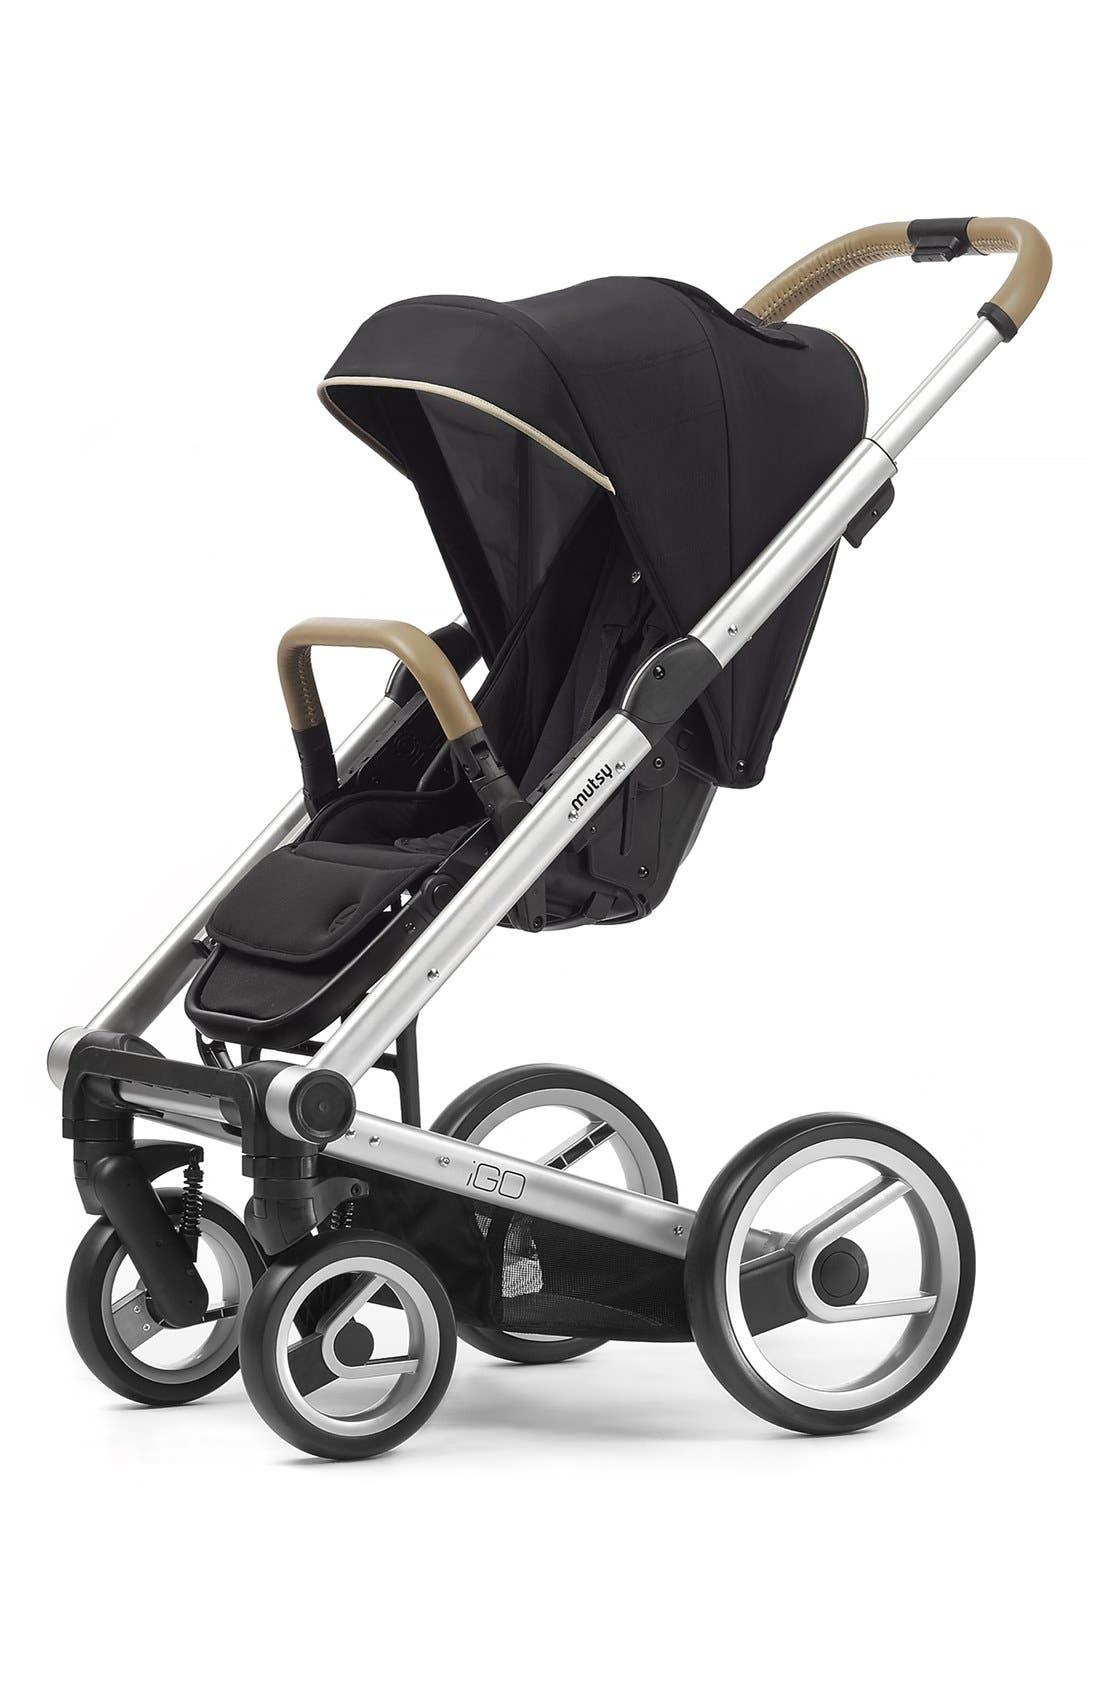 Mutsy 'Igo - Reflect Cosmo Black' Tech Fabric Stroller